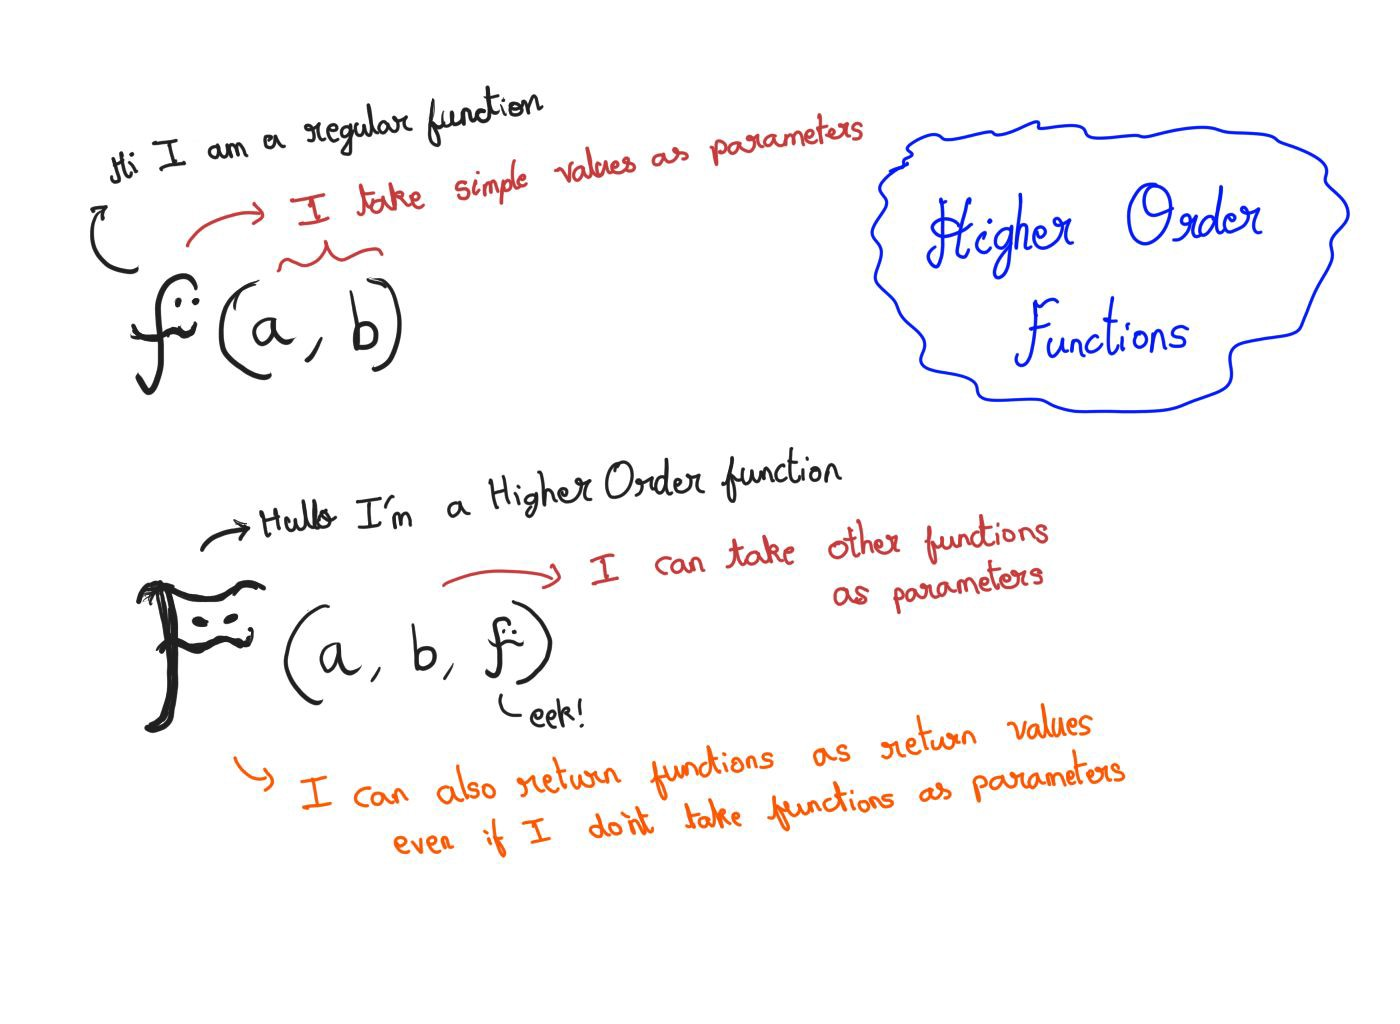 A normal function and a higher order function